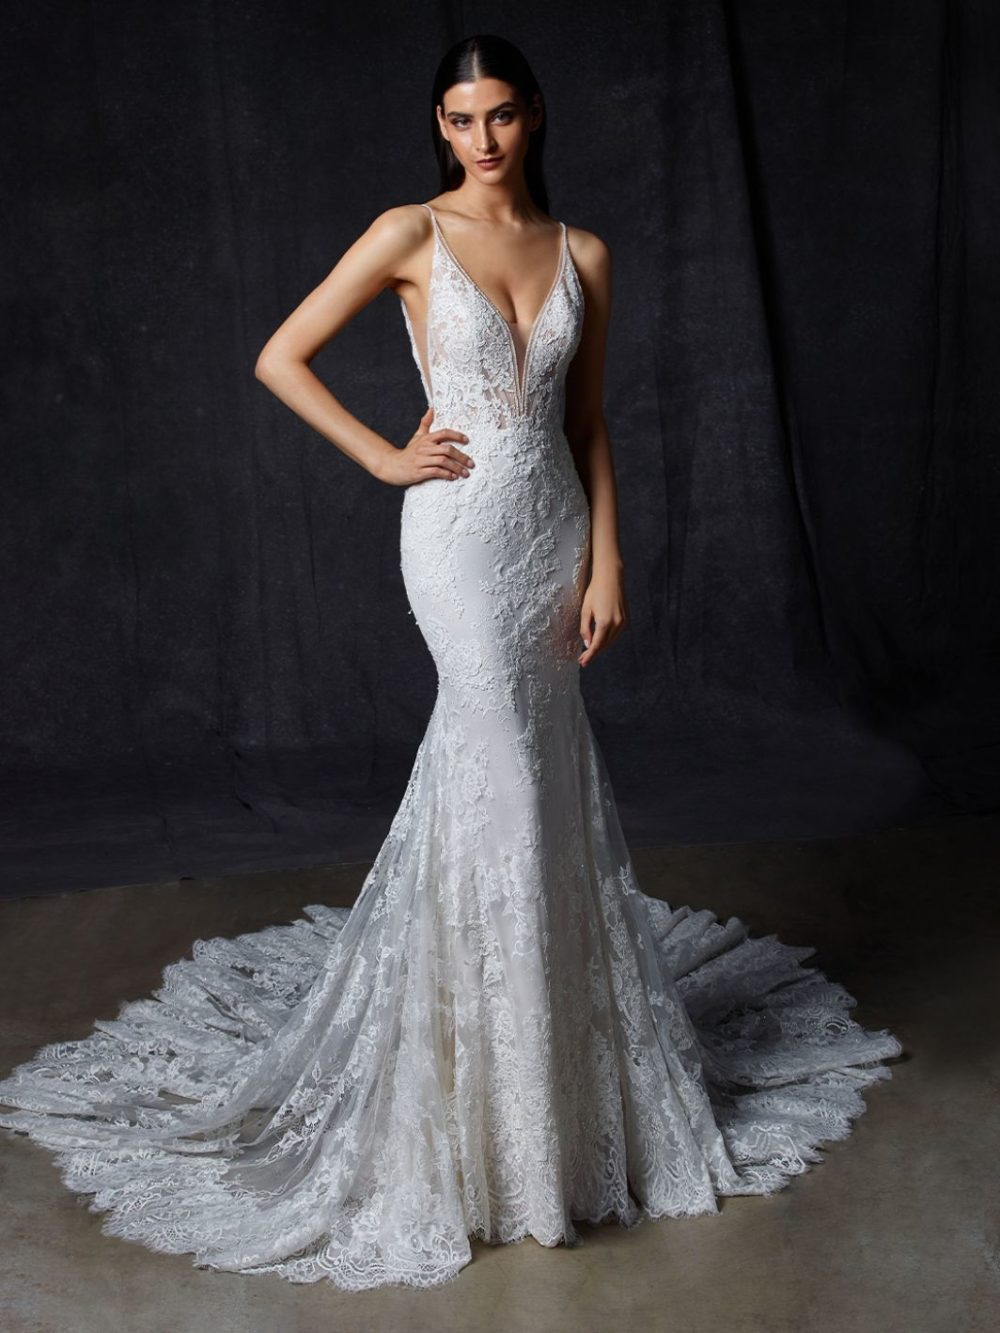 Onora by Enzoani Wedding gown dress